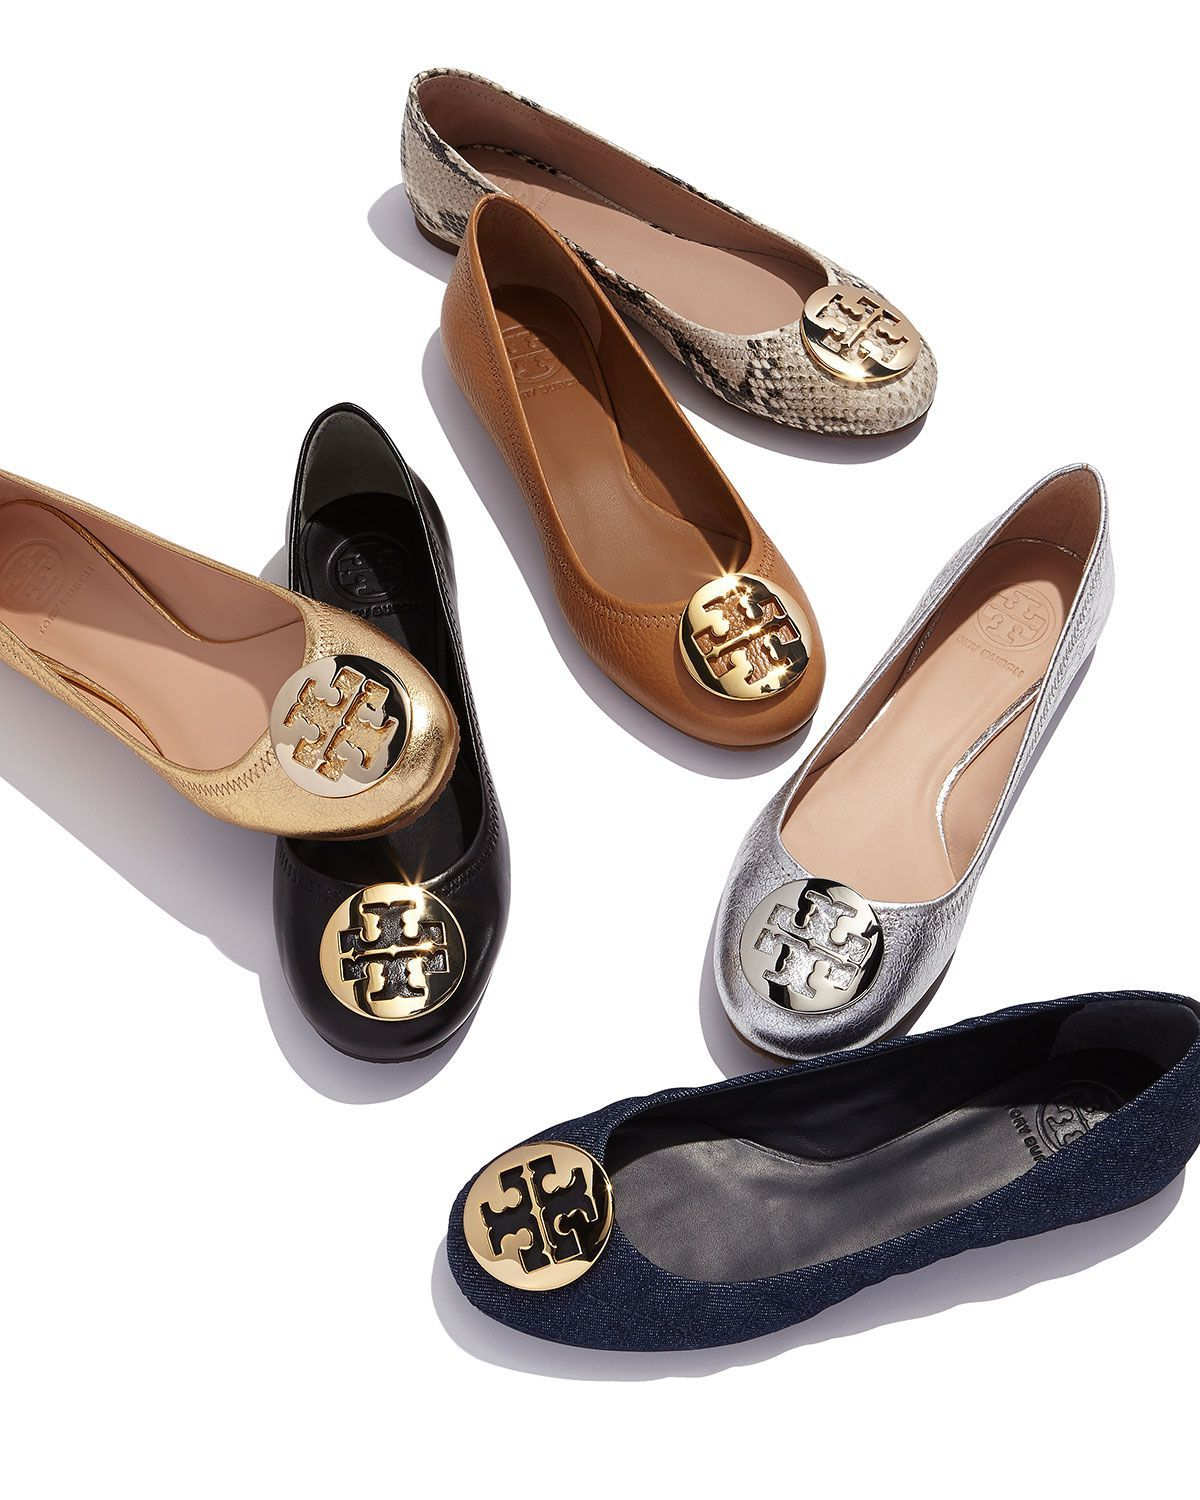 Tory Burch Logo plaque ballerina pumps